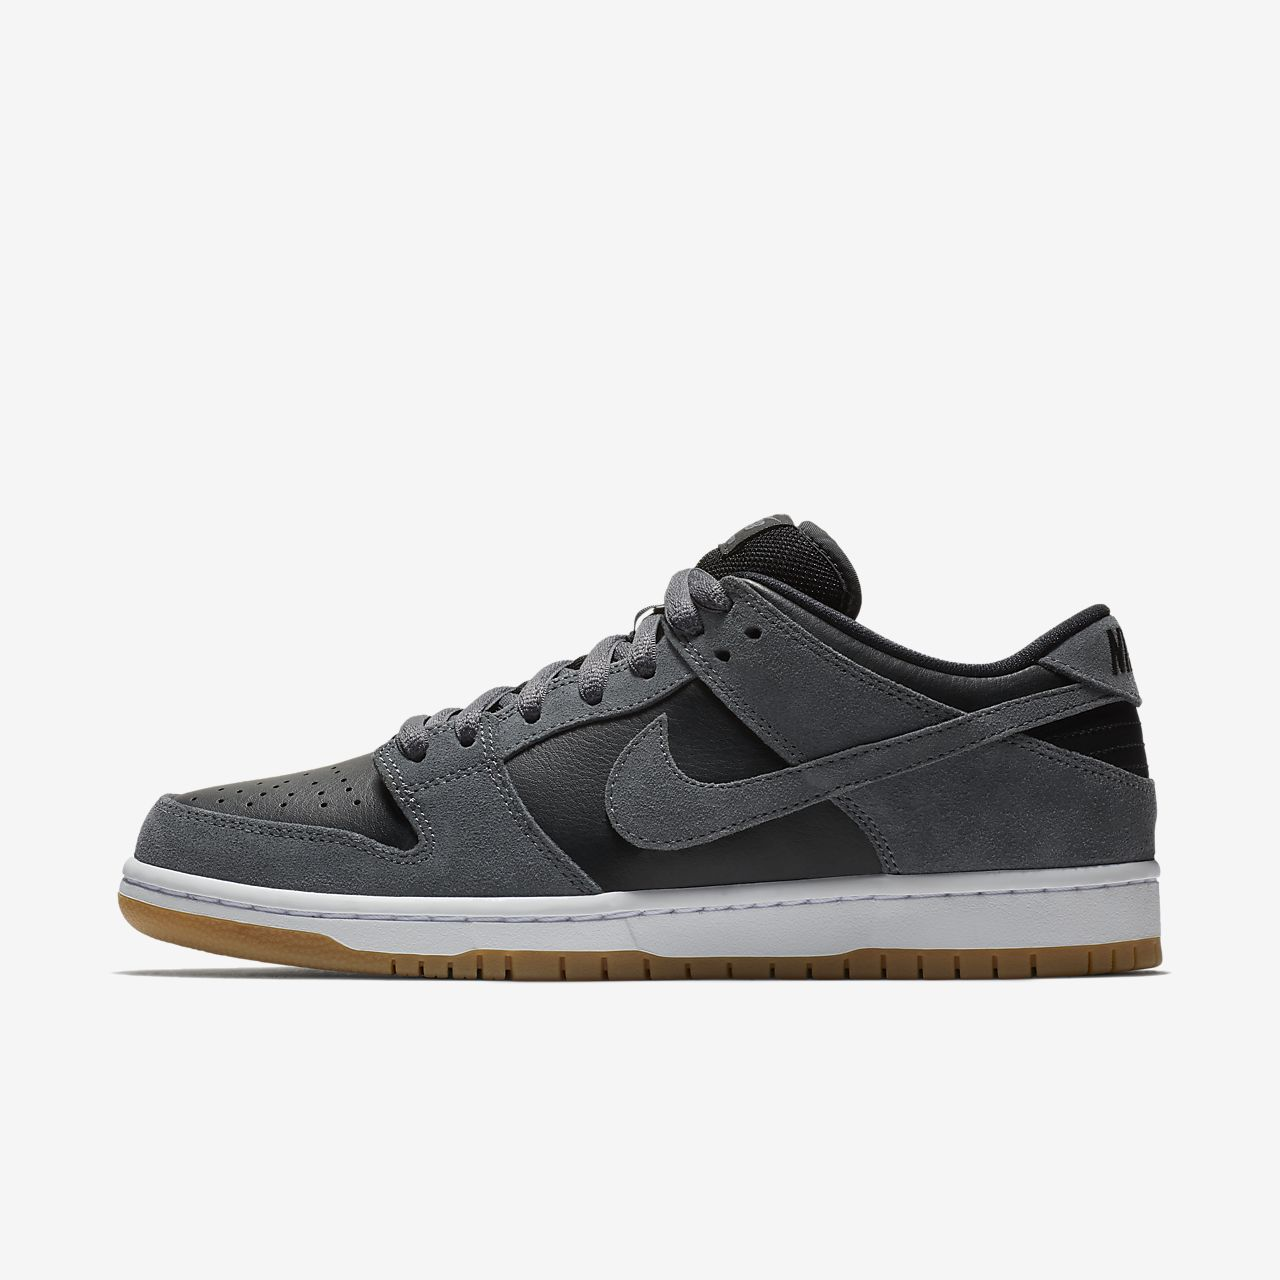 on sale 5ab4b 0c554 ... Scarpa da skateboard Nike SB Dunk Low TRD - Uomo